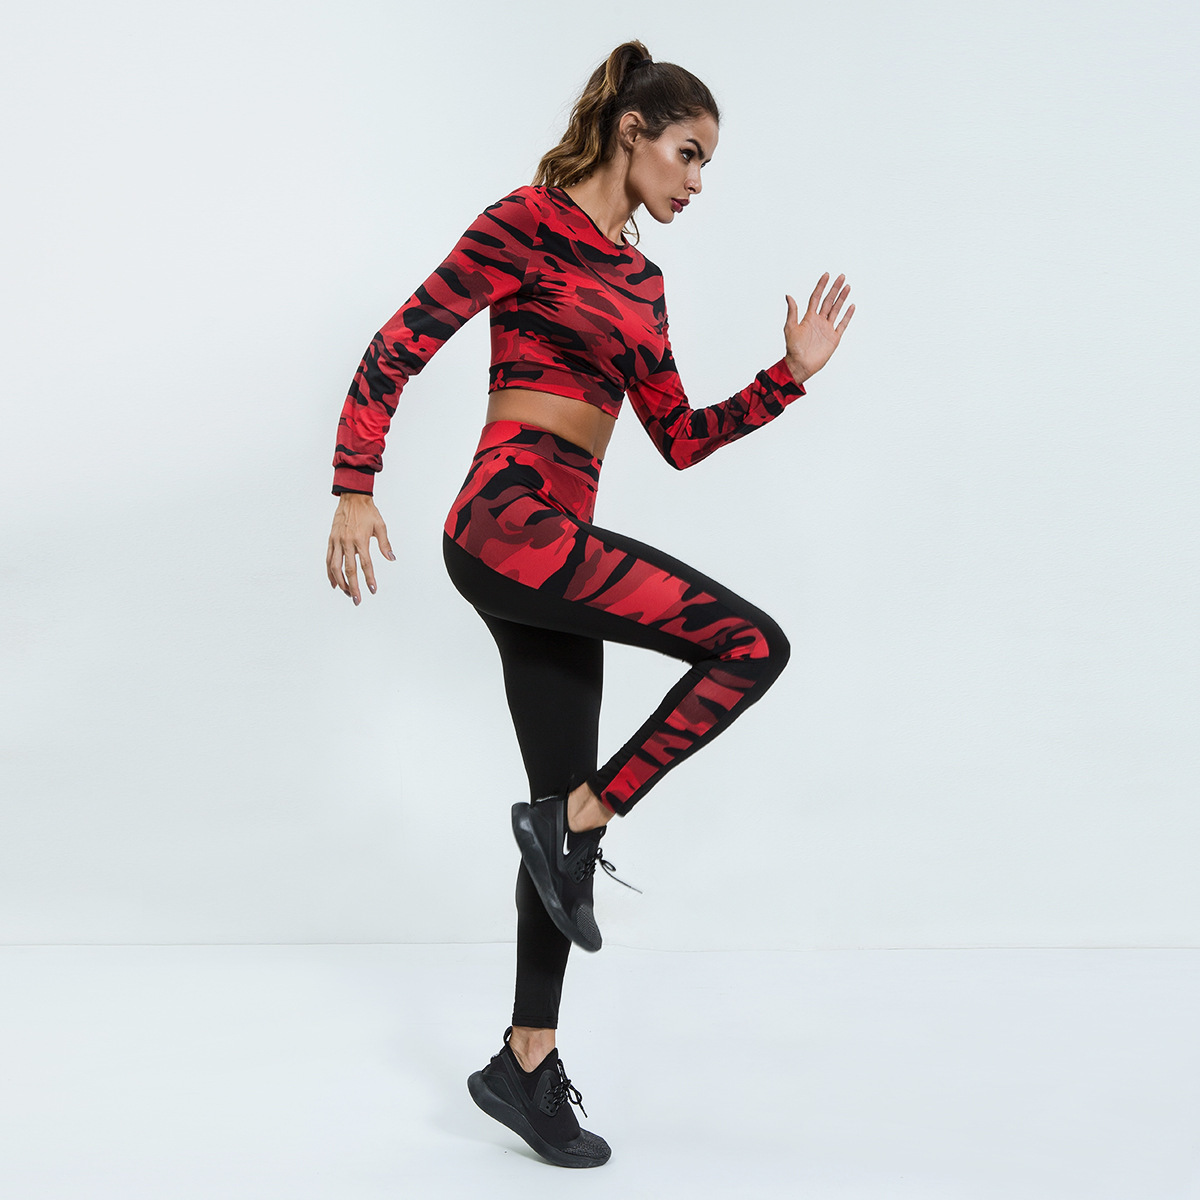 Ms Ragdoll Jogging Suits For Women Sportswear 2 Piece Yoga Set Camouflage Print Gym Clothing Fitness Sport Suit in Yoga Sets from Sports Entertainment